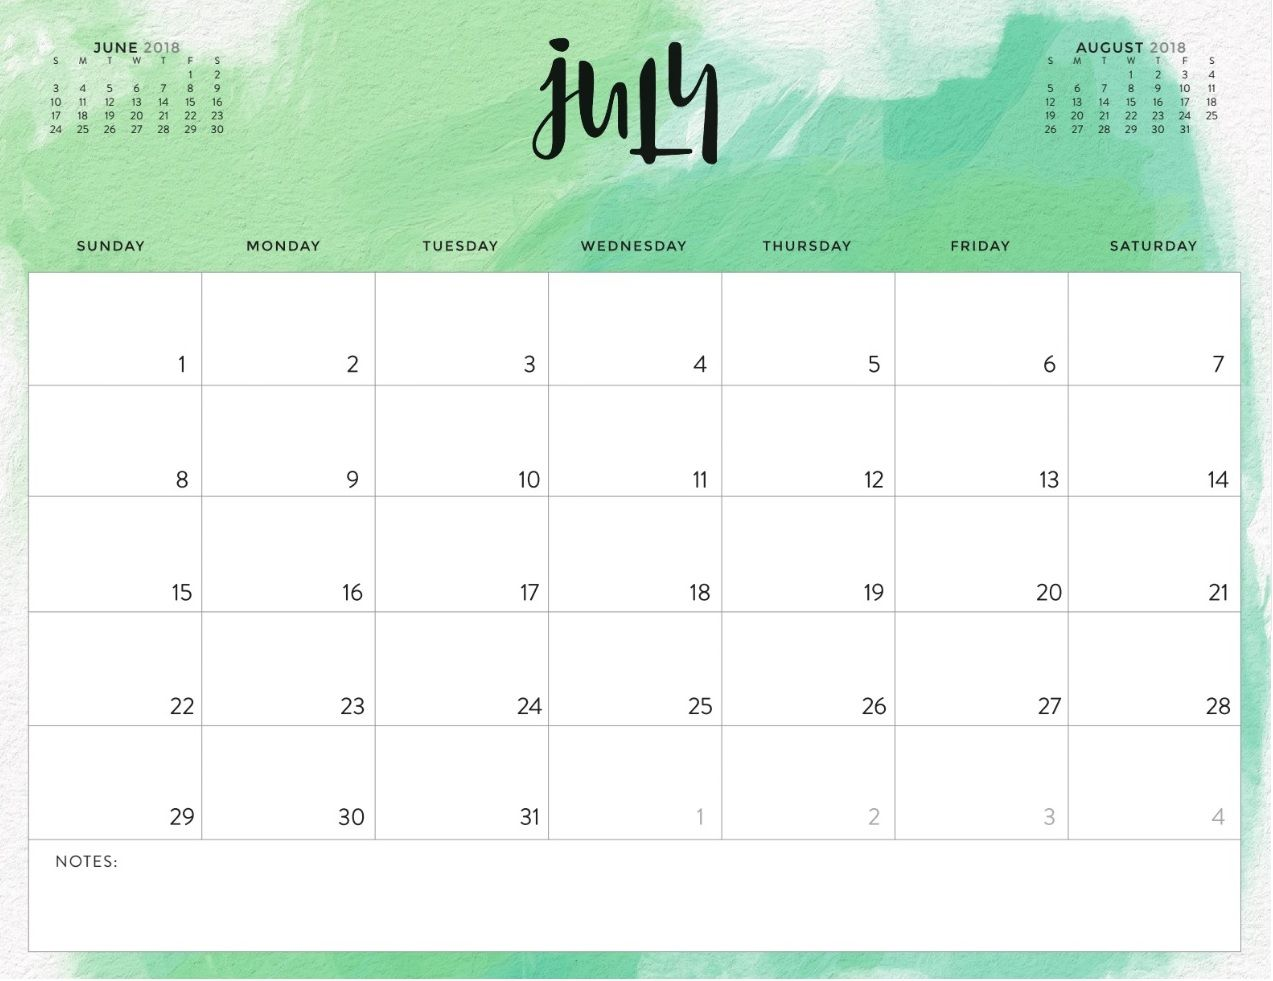 July 2018 Colorful Calendar For Office Desk | Calendar 2018